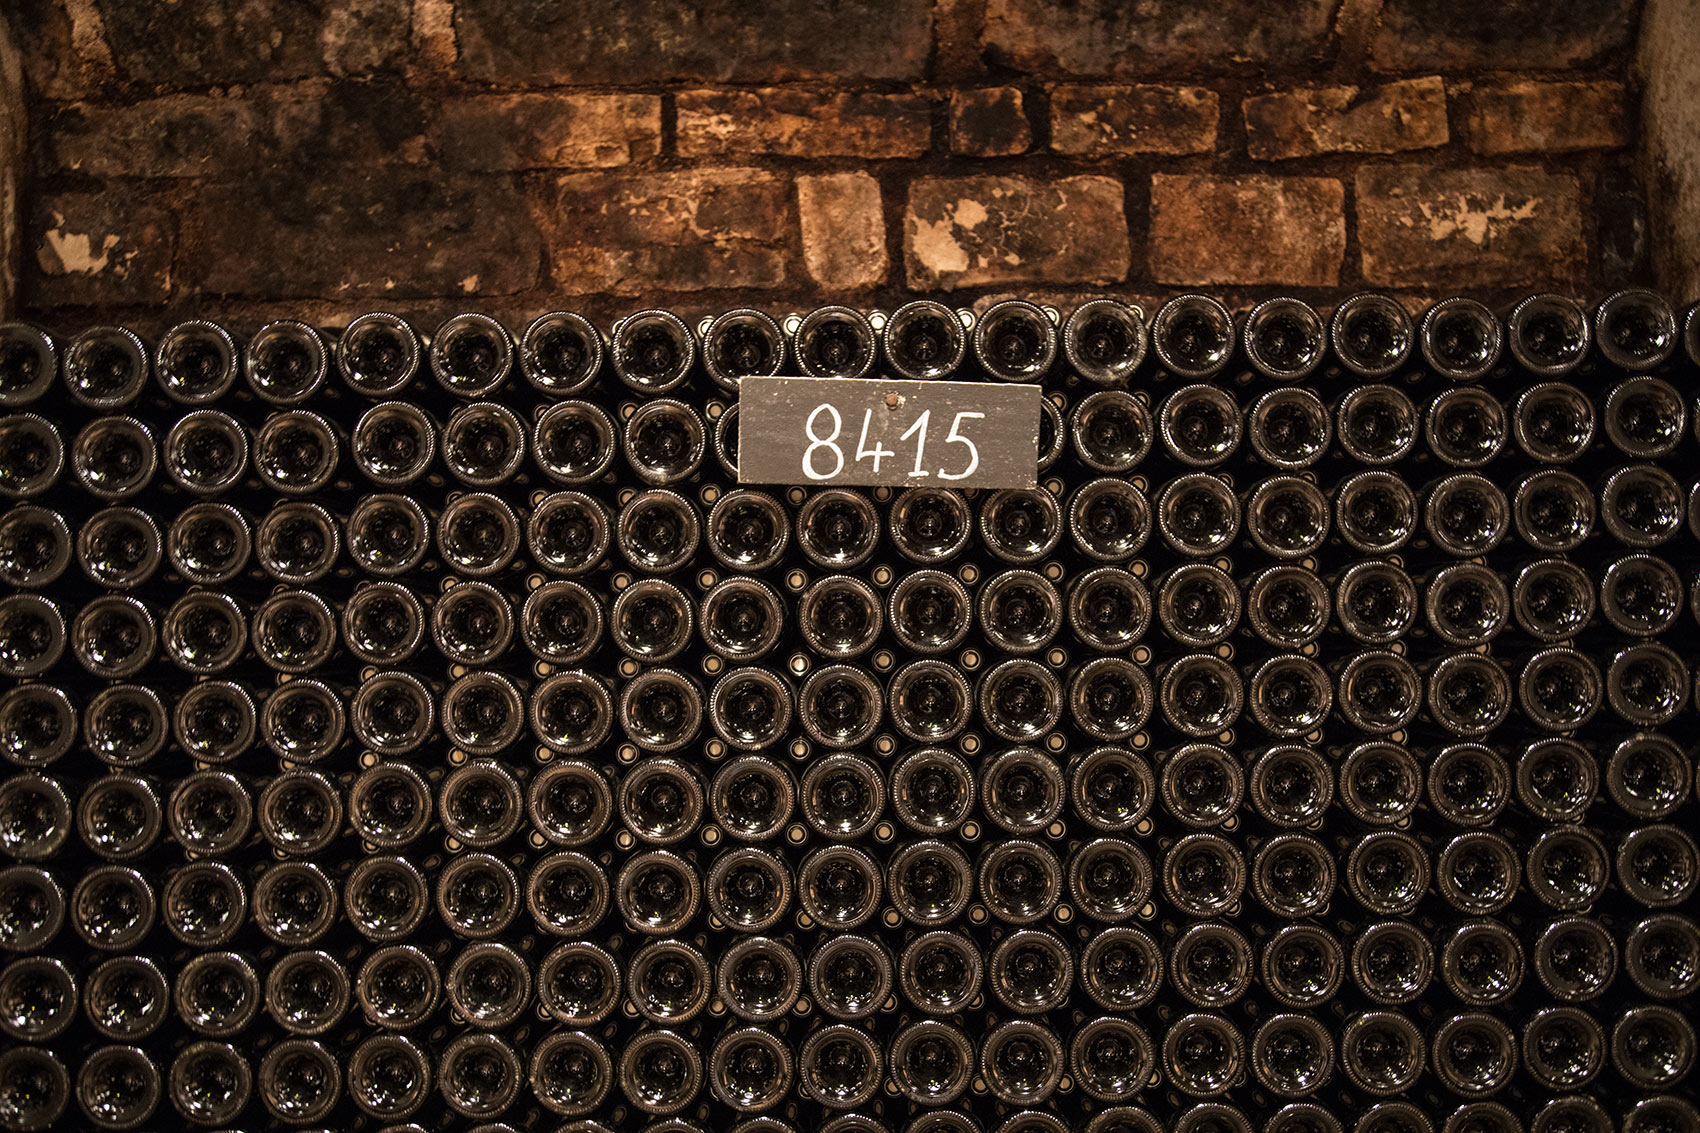 Bottle Rack in a Burgundy Cellar